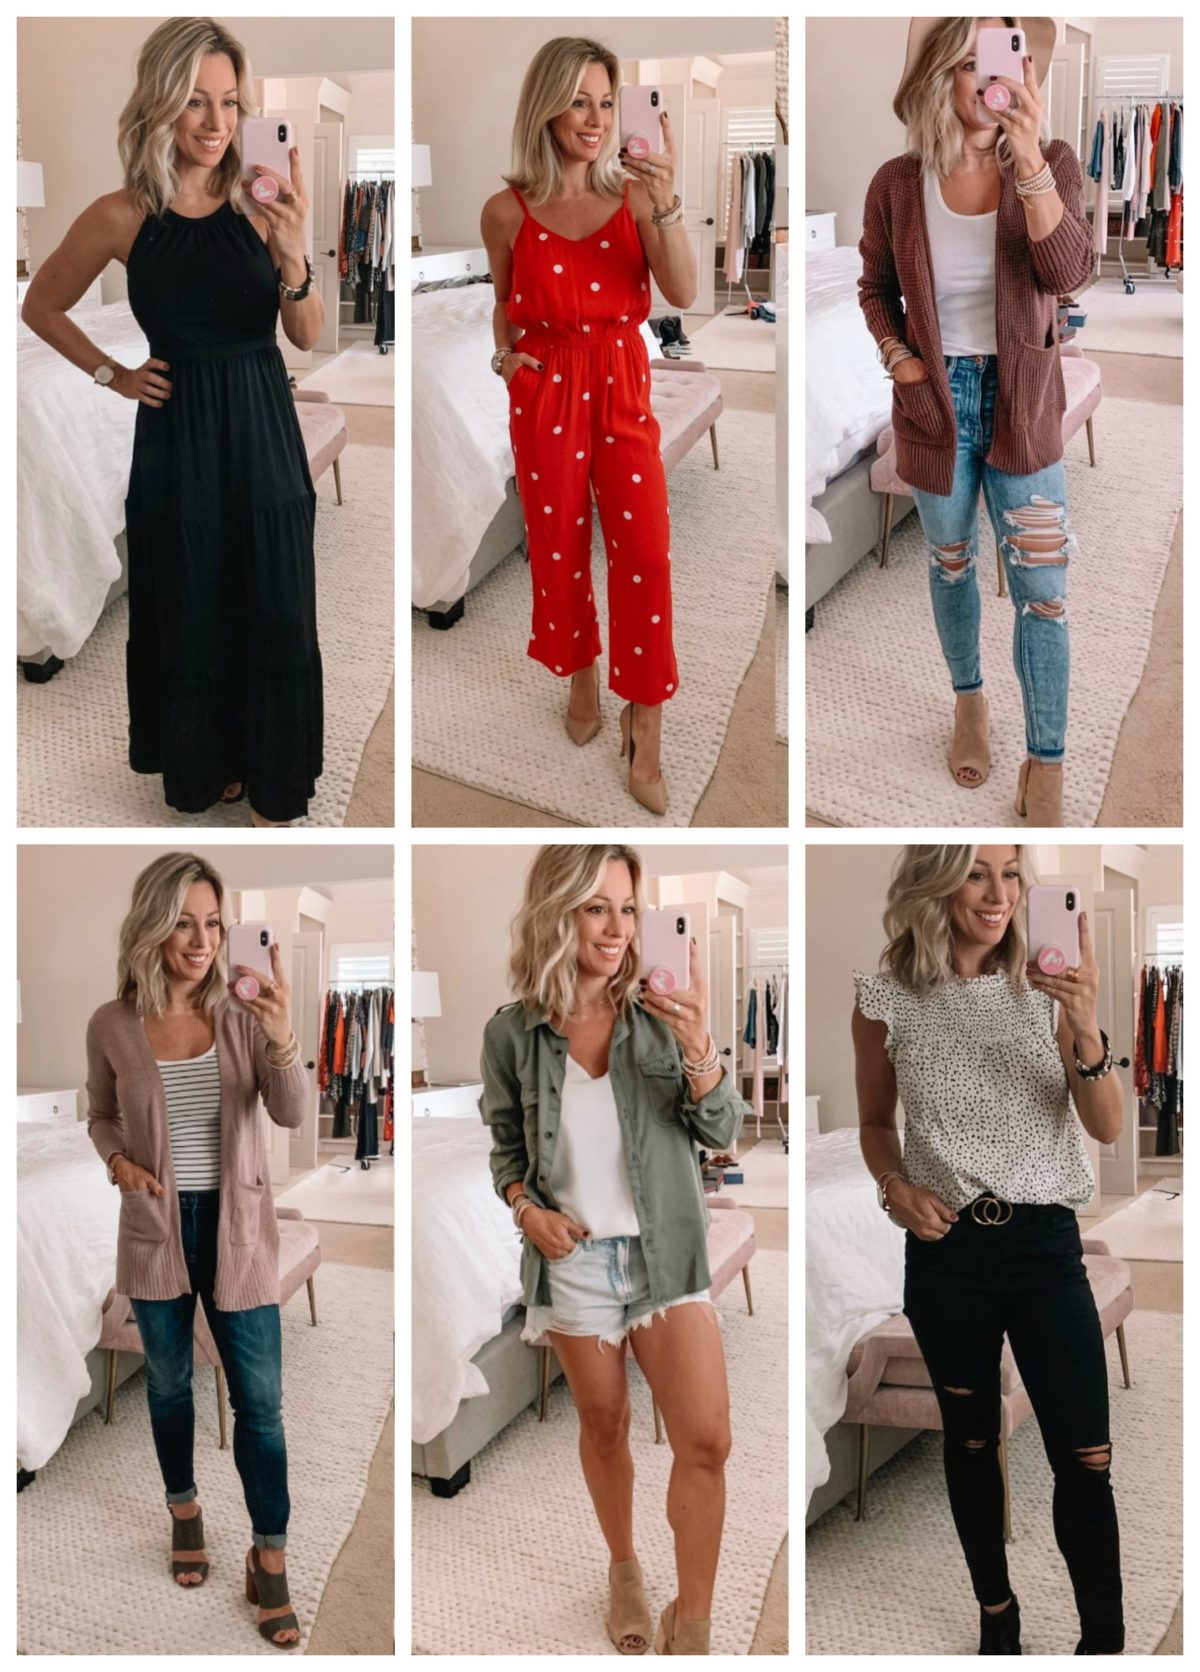 Dressing Room Outfits